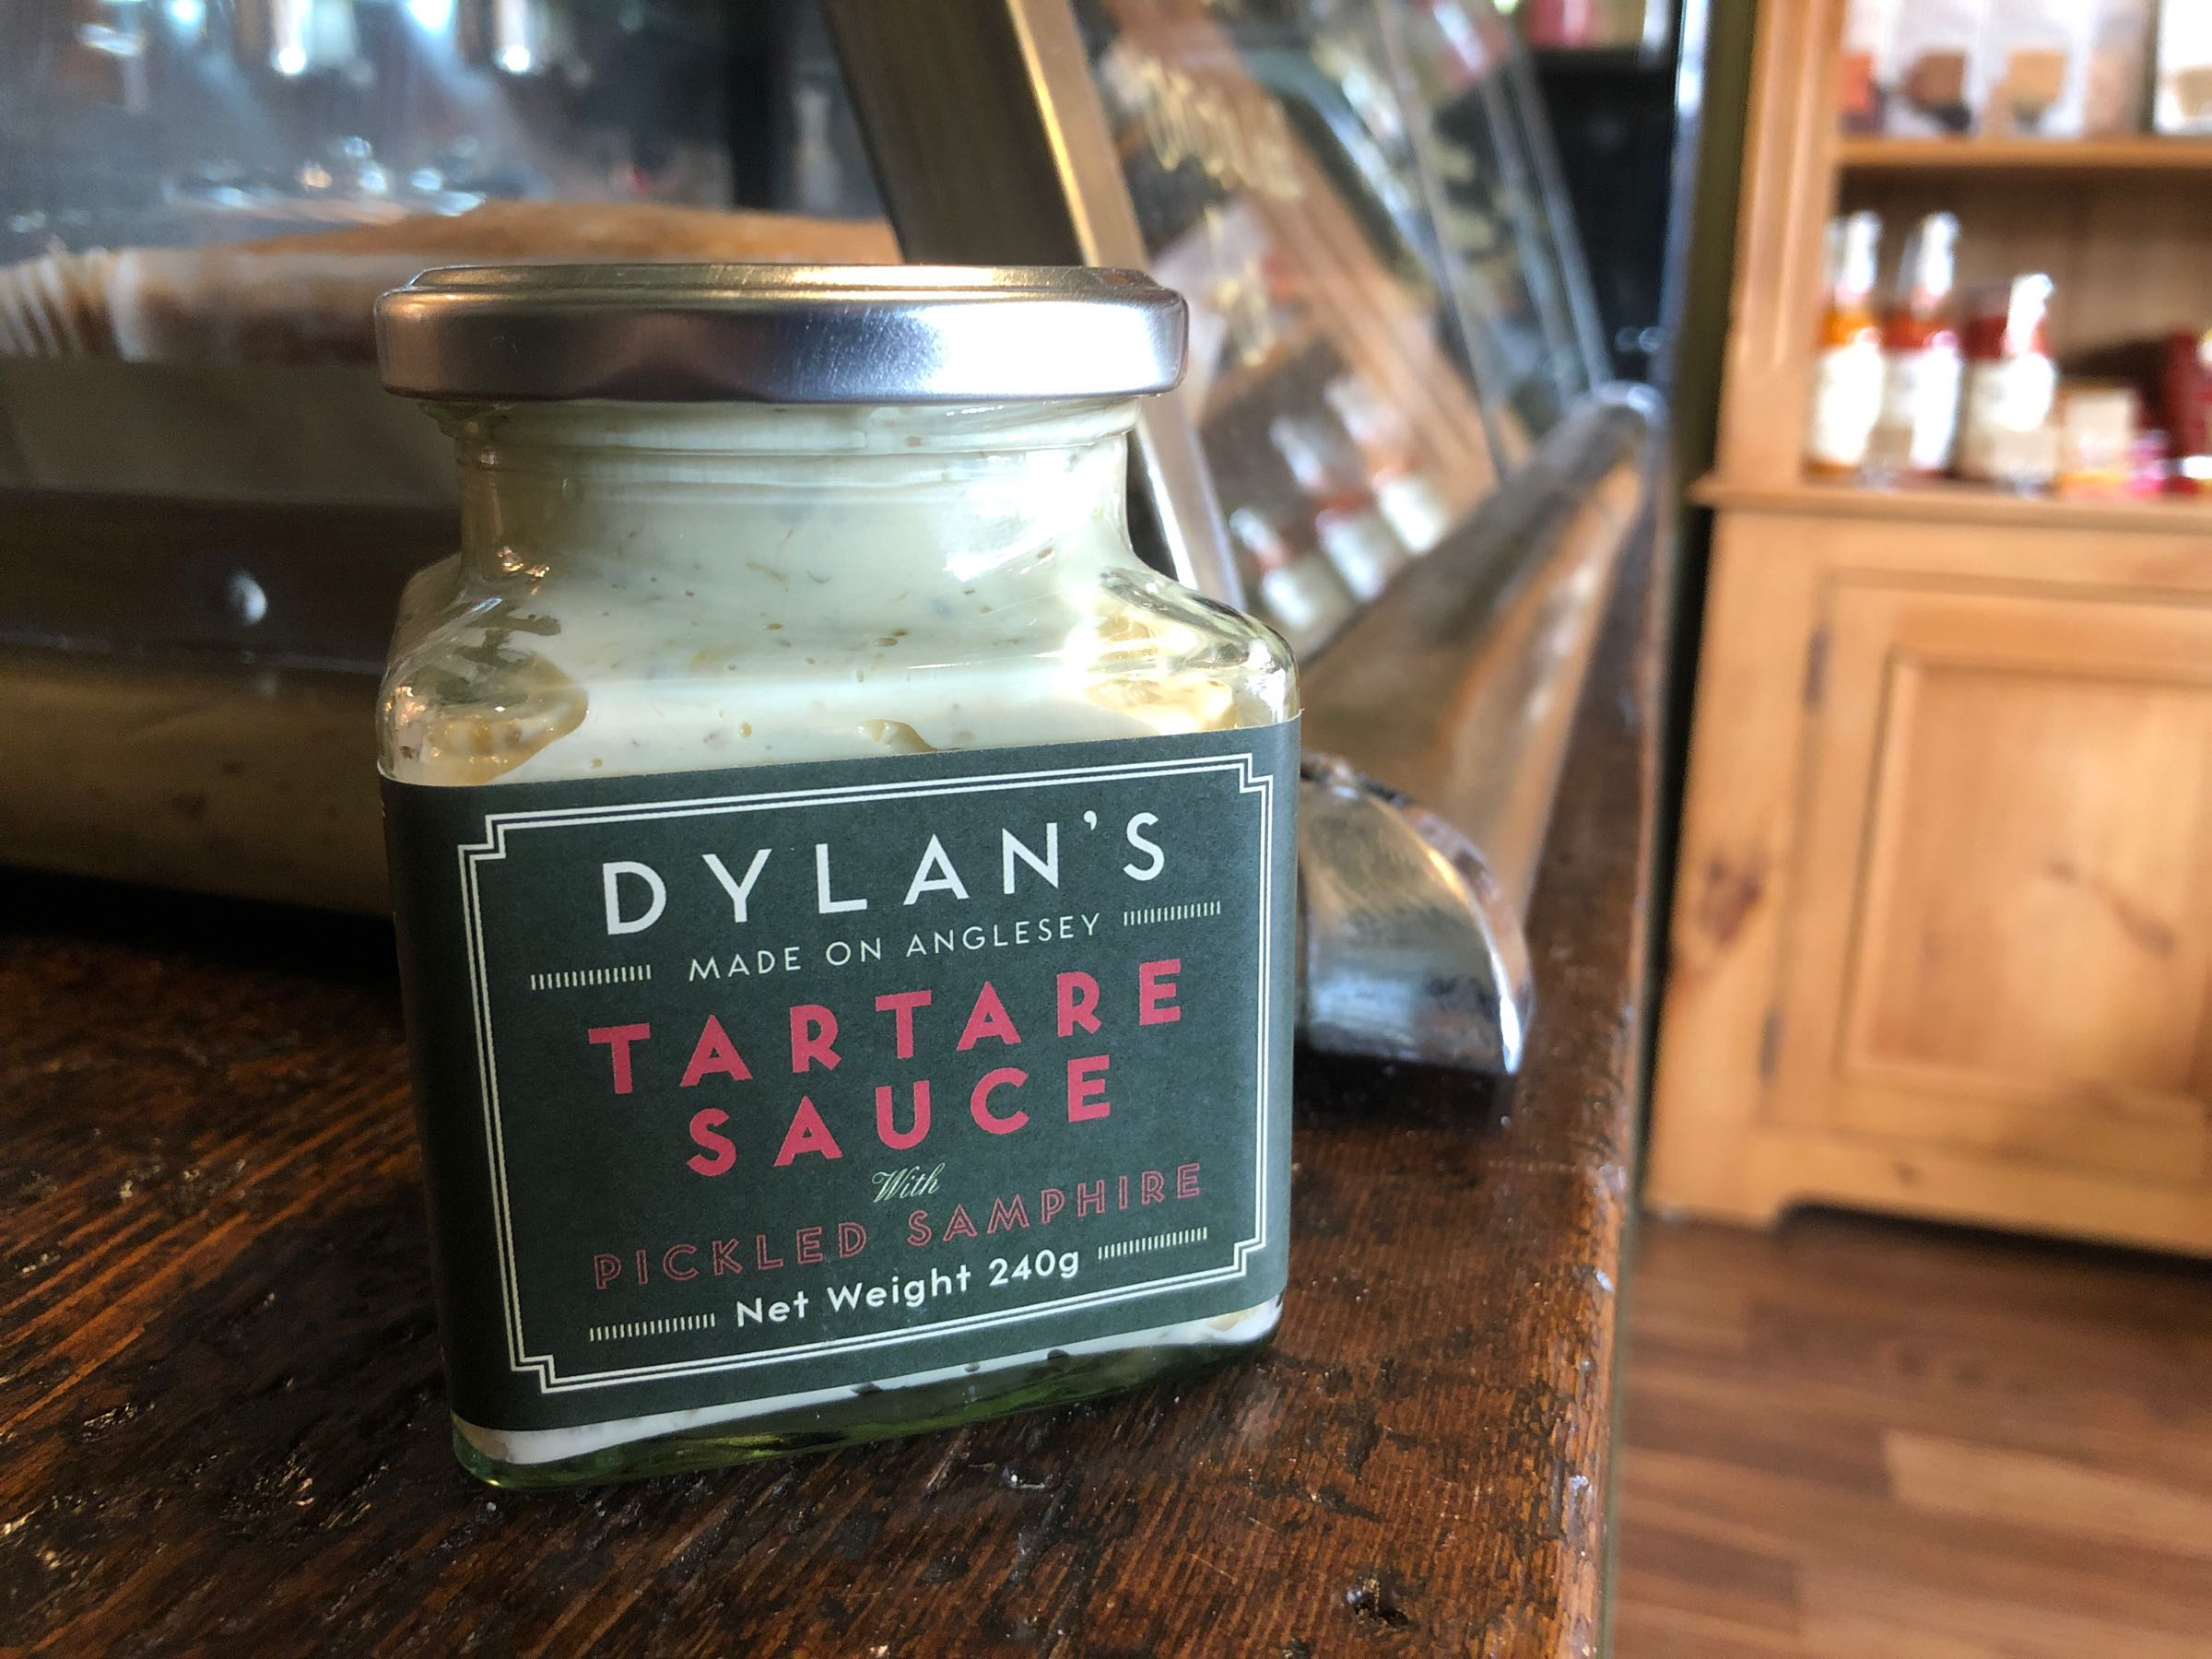 Dylan's Tartare Sauce with pickled samphire